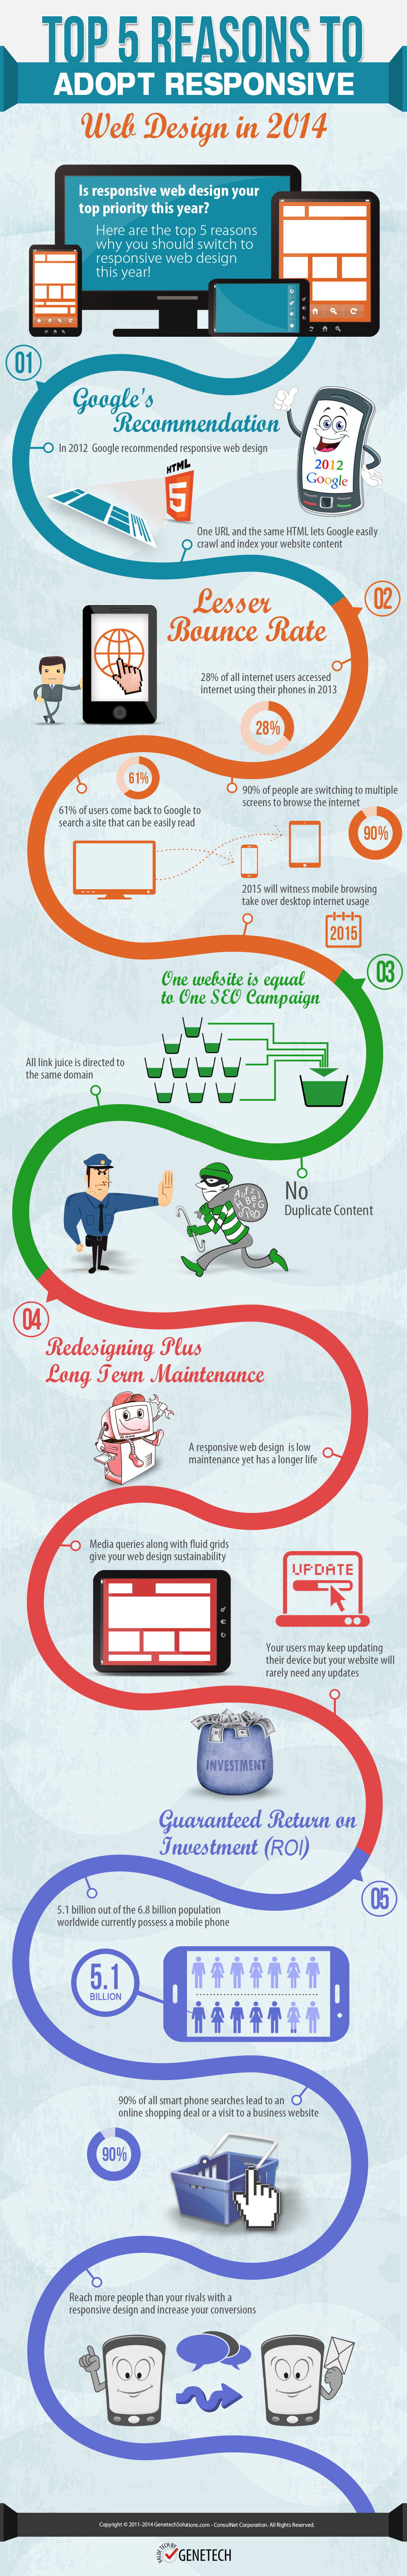 Top 5 Reasons to Adopt Responsive Web Design in 2014 [Infographic]